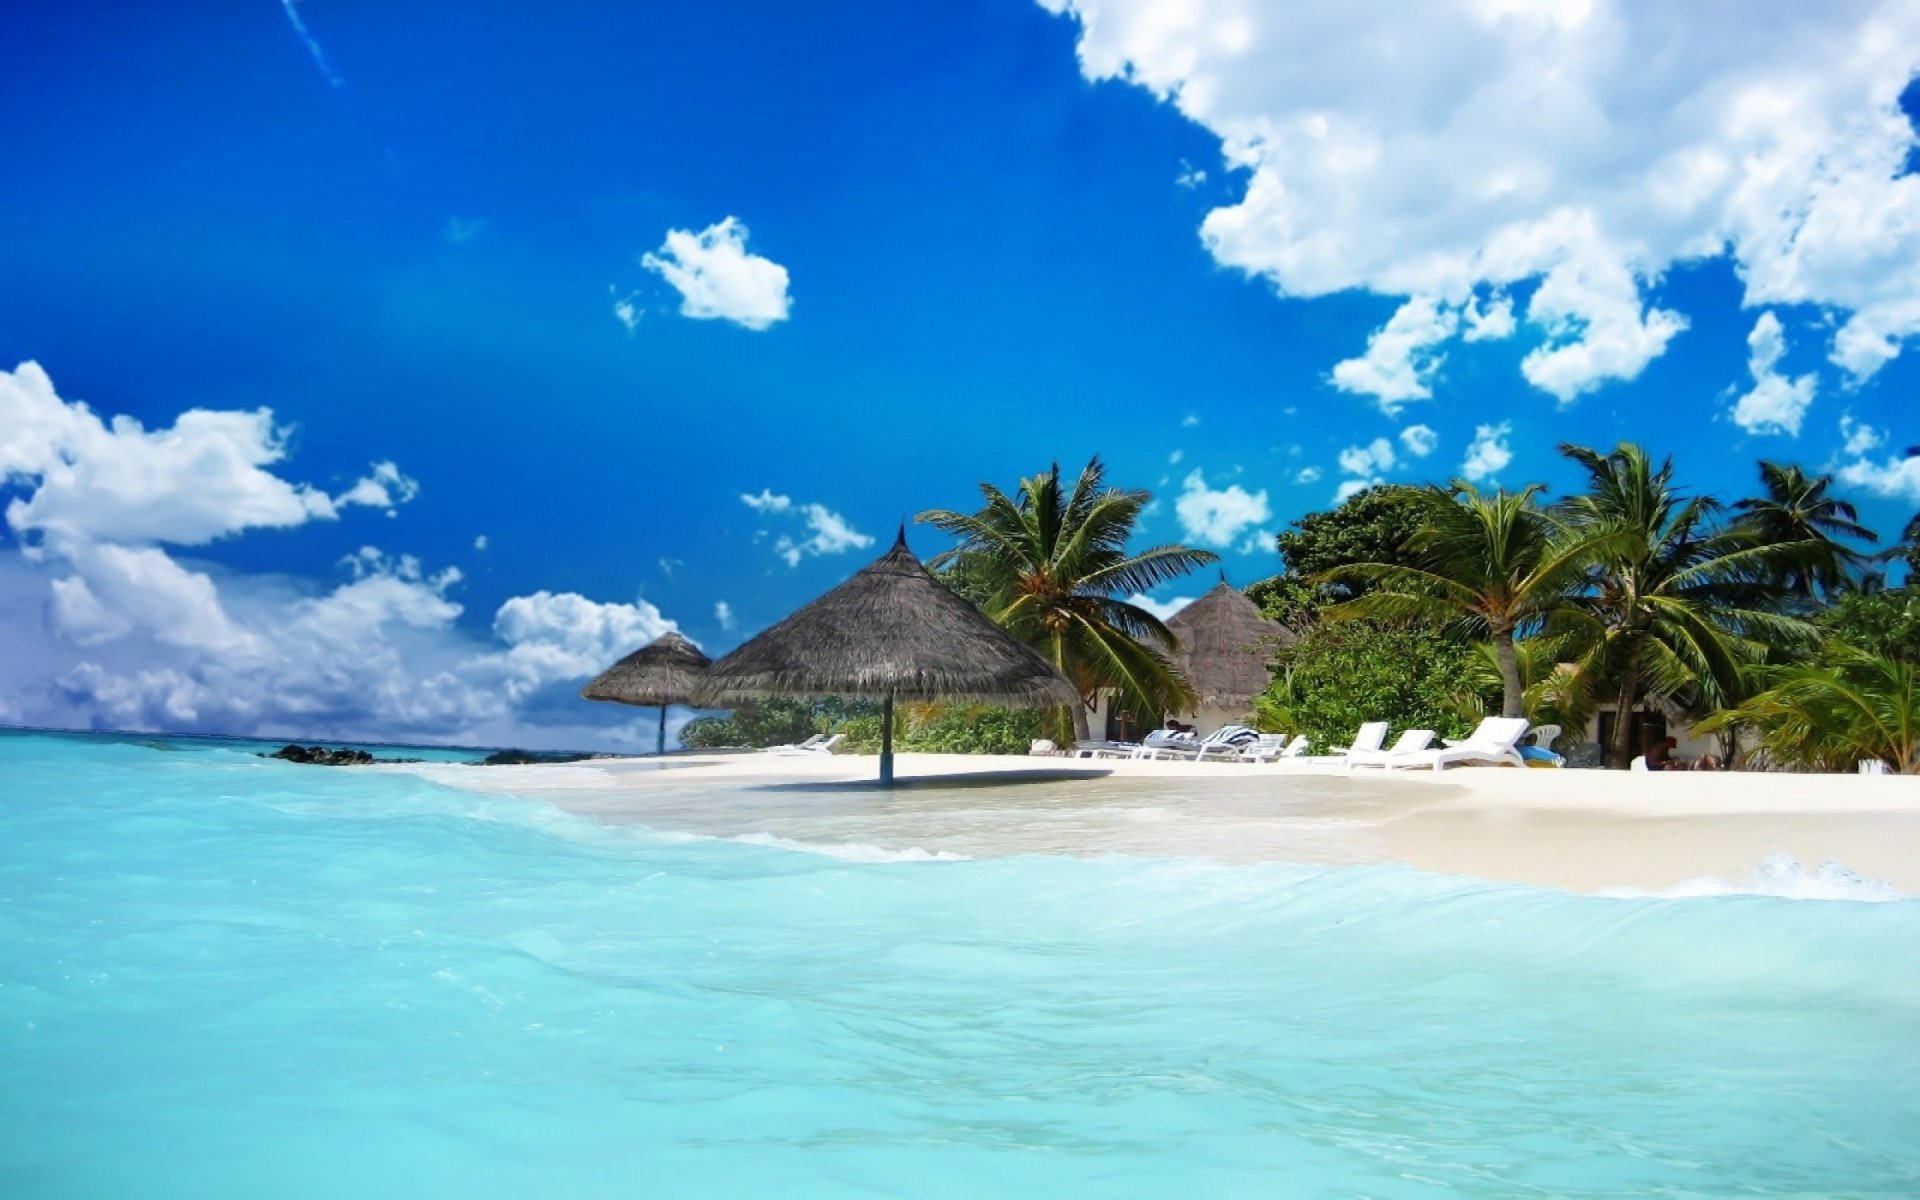 Maldives 4k Wallpapers For Your Desktop Or Mobile Screen